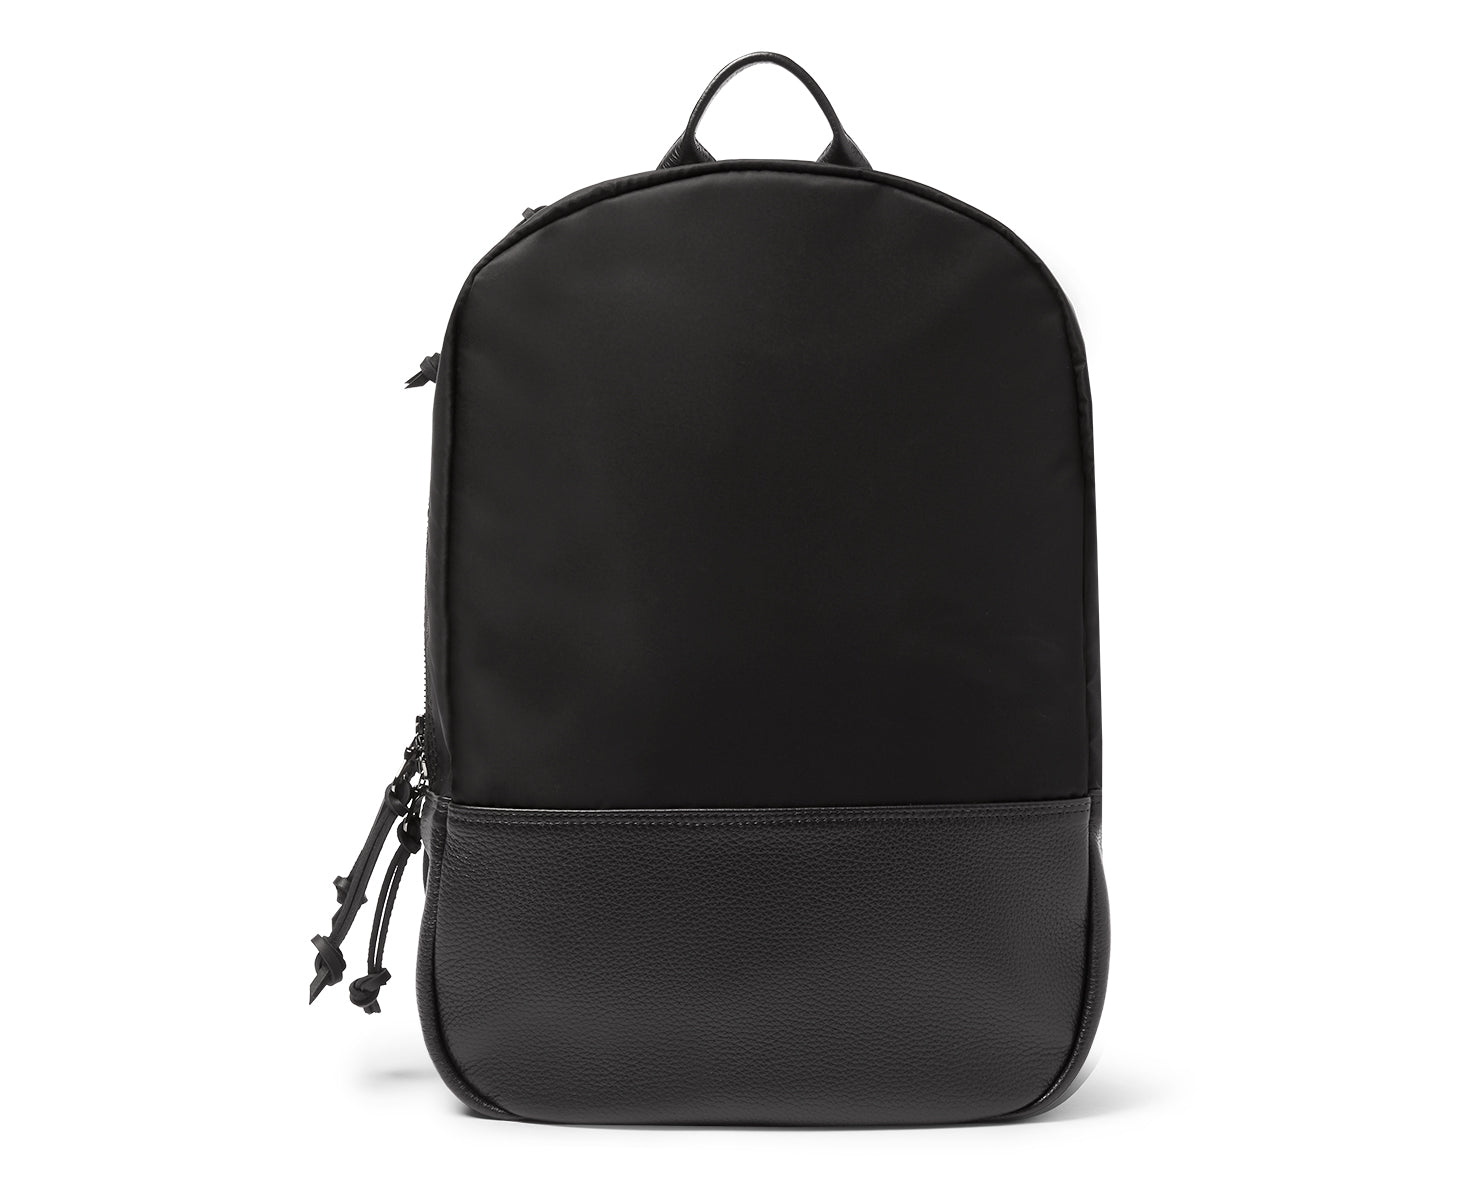 UTILITY DAYPACK | KILLSPENCER® - Black Italian Nylon and Leather